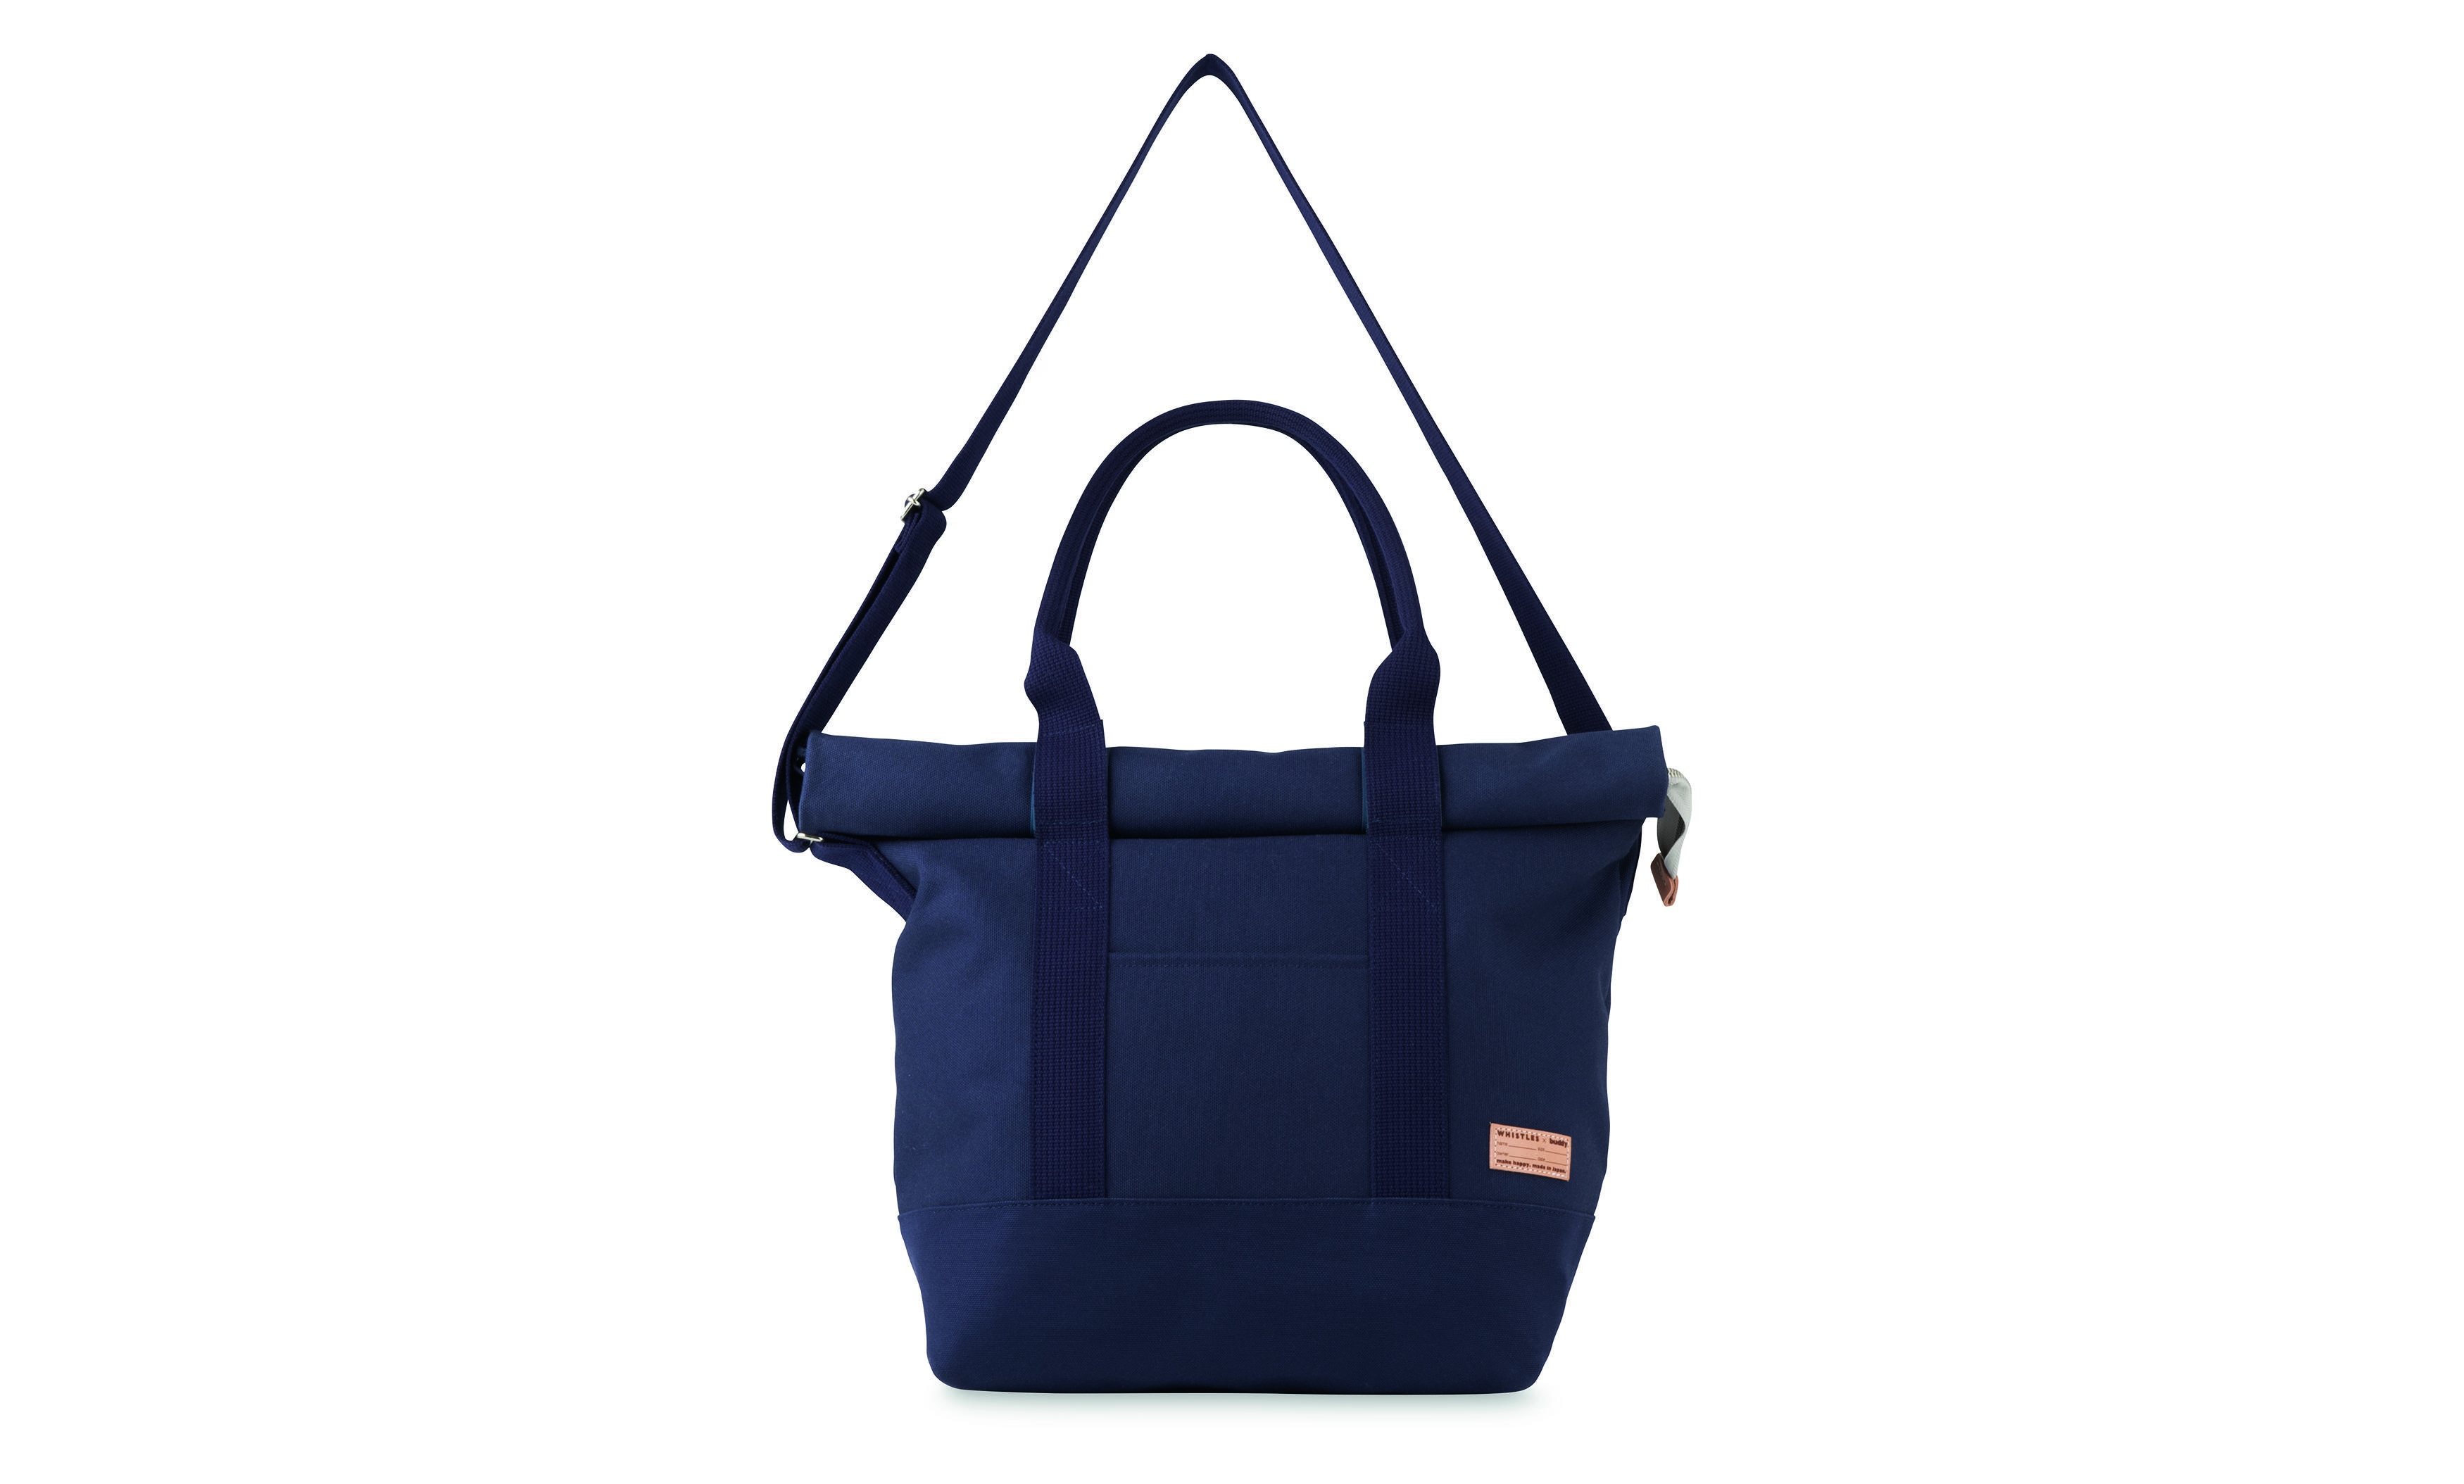 whistles-riley-roll-top-tote-bag-navy_03.jpg